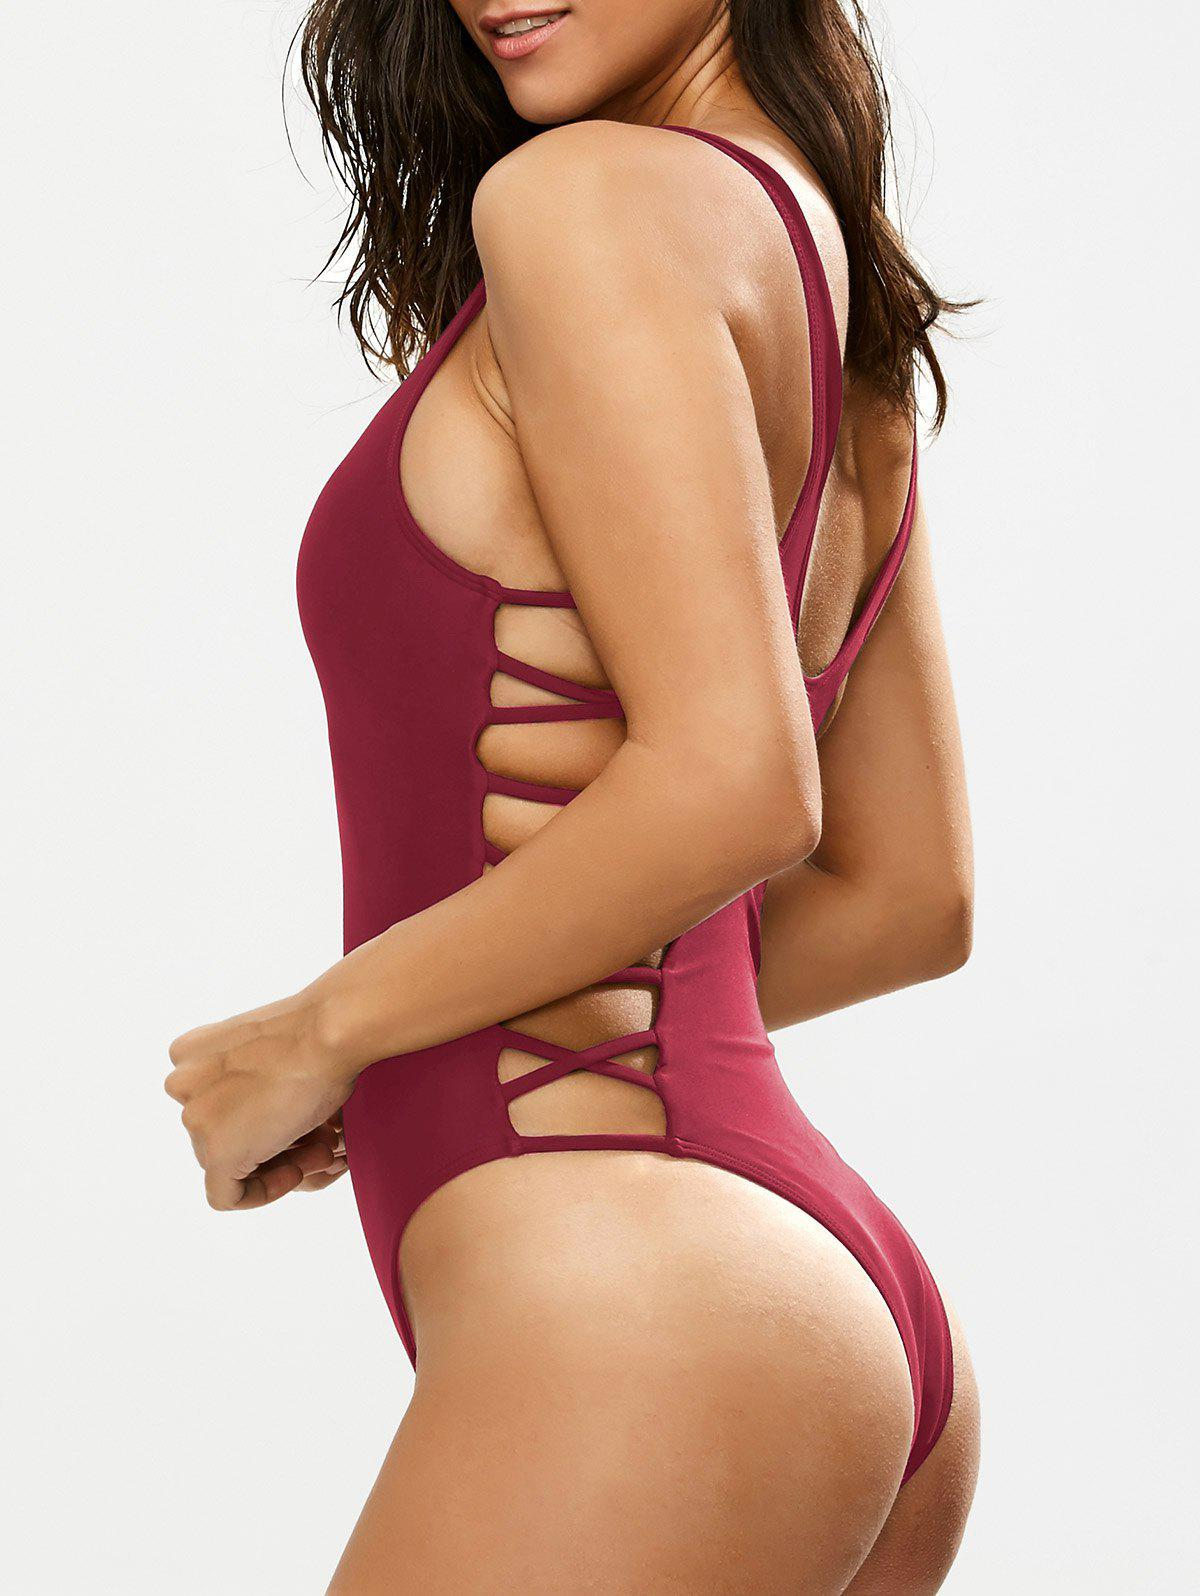 Lacing Up One Piece SwimsuitWOMEN<br><br>Size: L; Color: BURGUNDY; Swimwear Type: One Piece; Gender: For Women; Material: Nylon,Polyester,Spandex; Bra Style: Padded; Support Type: Wire Free; Neckline: Plunging Neck; Pattern Type: Solid; Waist: Natural; Elasticity: Elastic; Weight: 0.2700kg; Package Contents: 1 x Swimsuit;